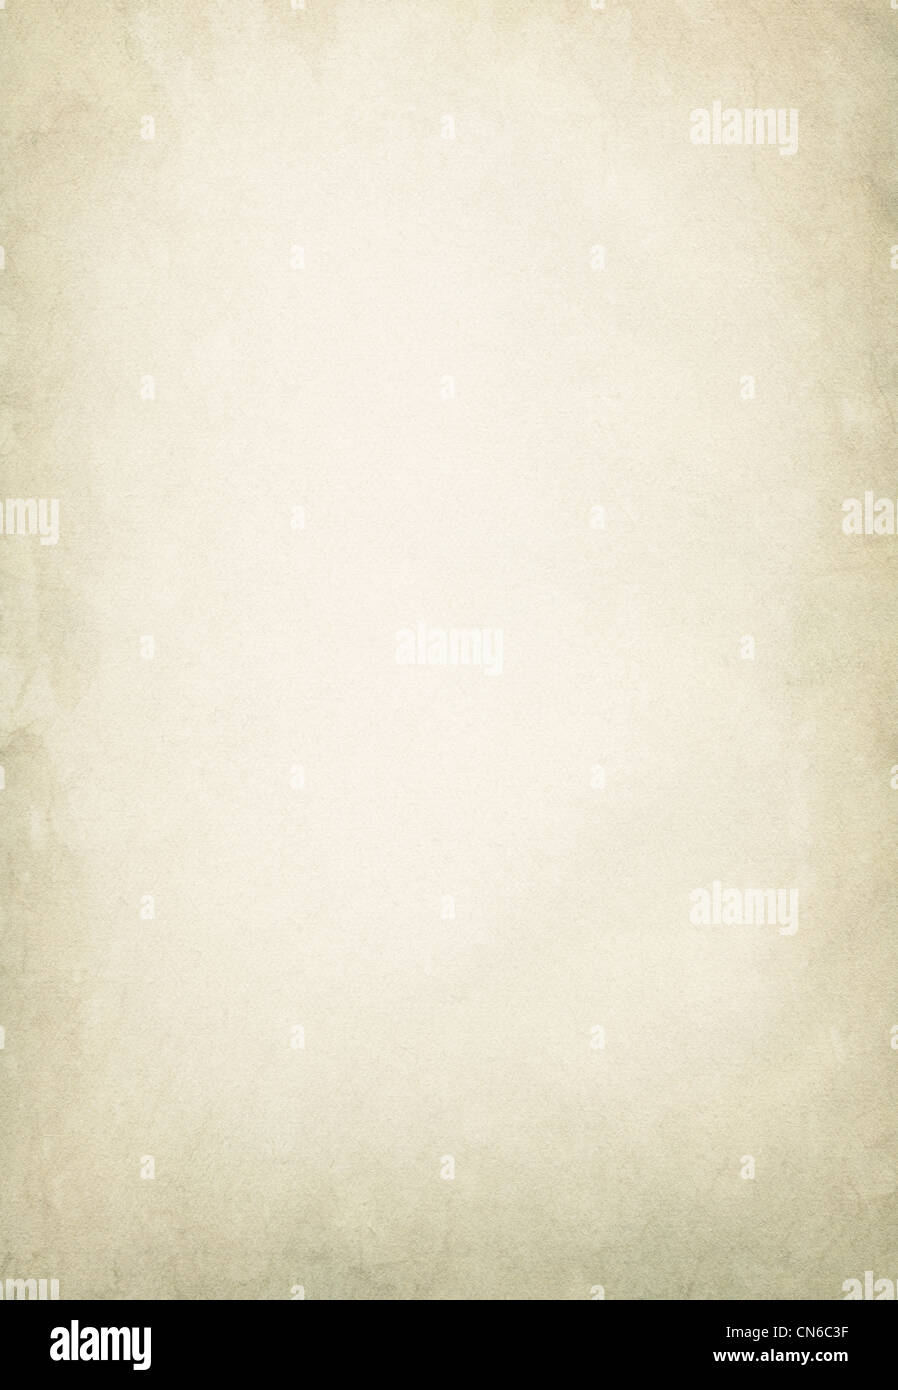 Grunge paper texture background - Stock Image